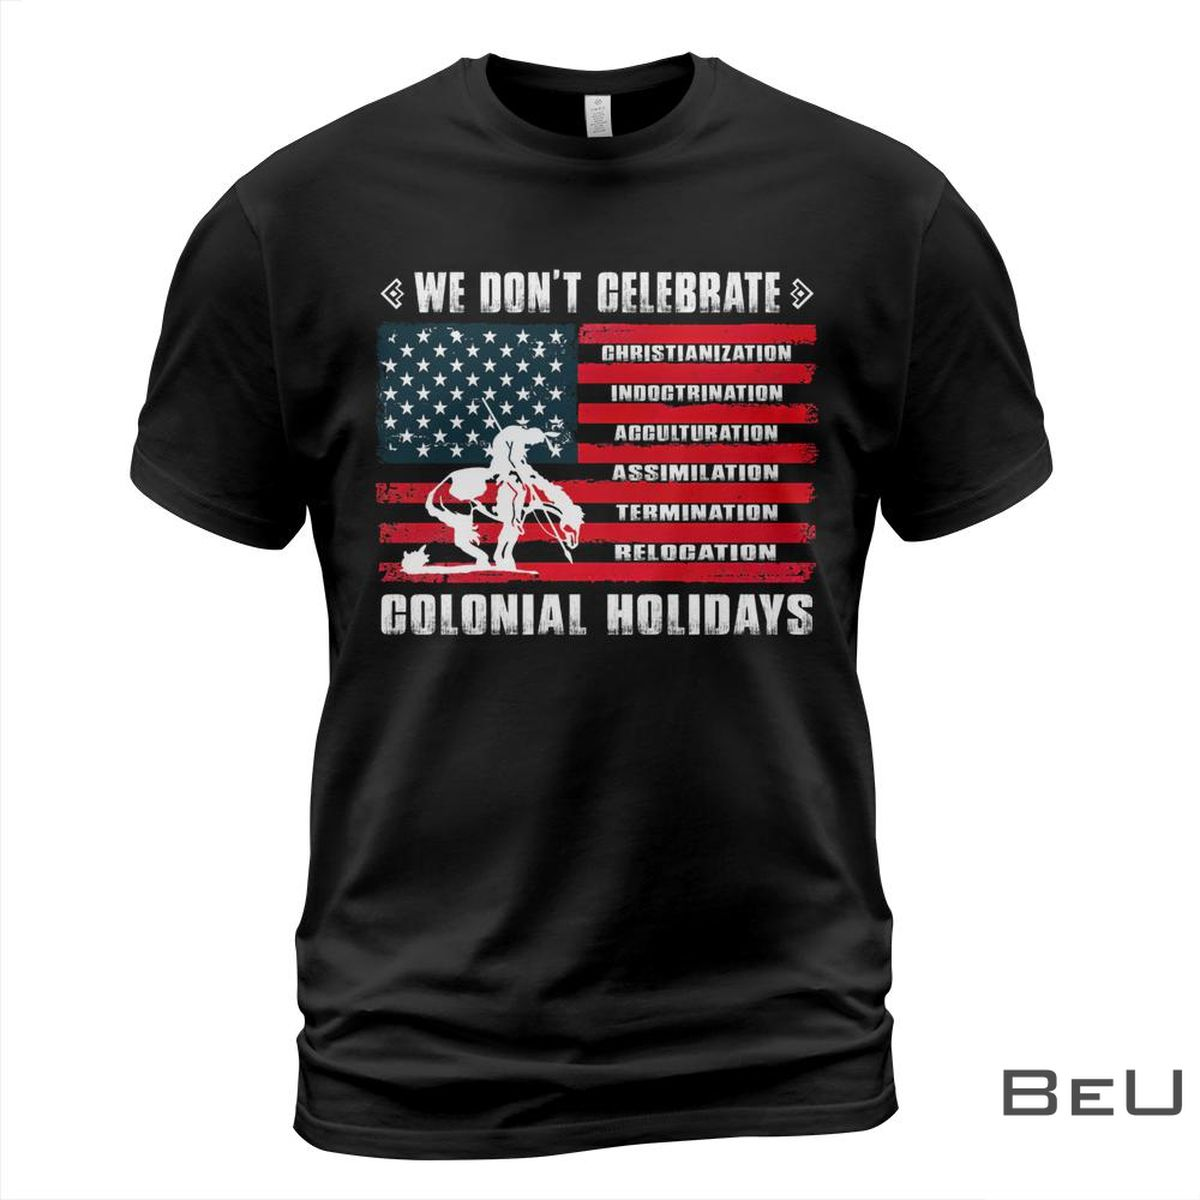 We Don't Celebrate Colonial Holidays Shirt, hoodie ,tank top